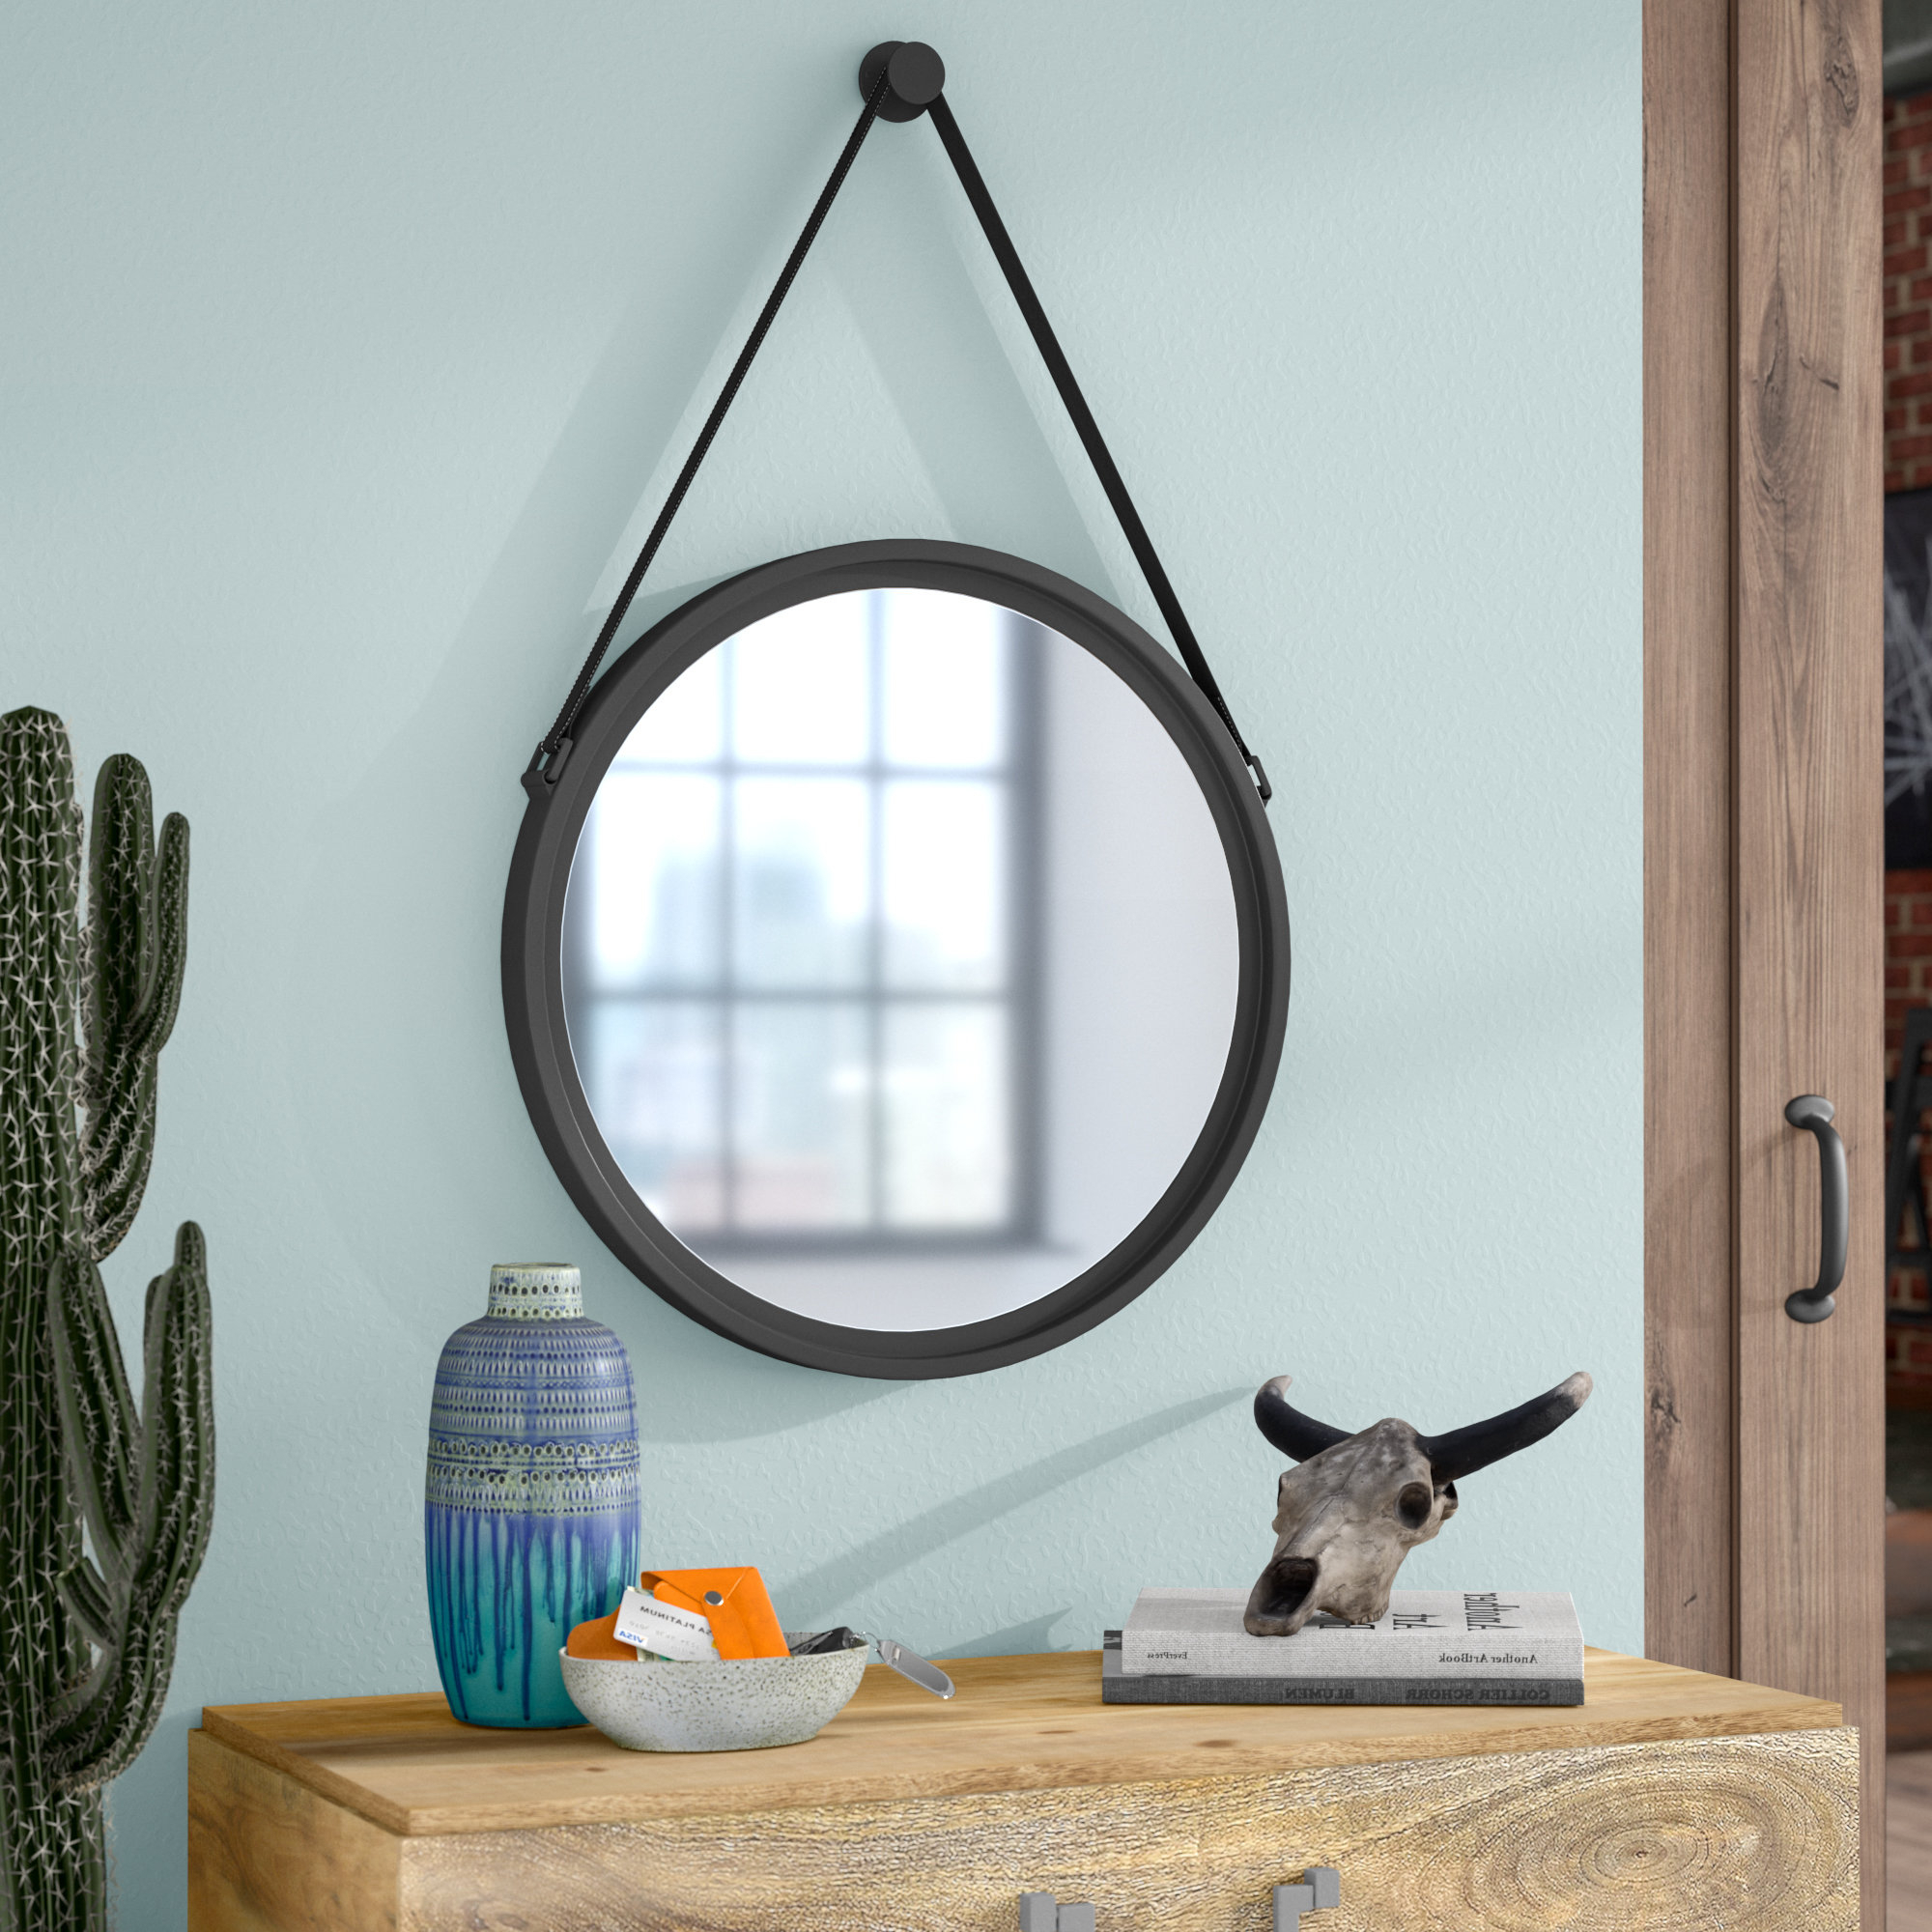 Most Recent Bem Decorative Wall Mirrors Pertaining To Round Metal Wall Mirror (View 12 of 20)